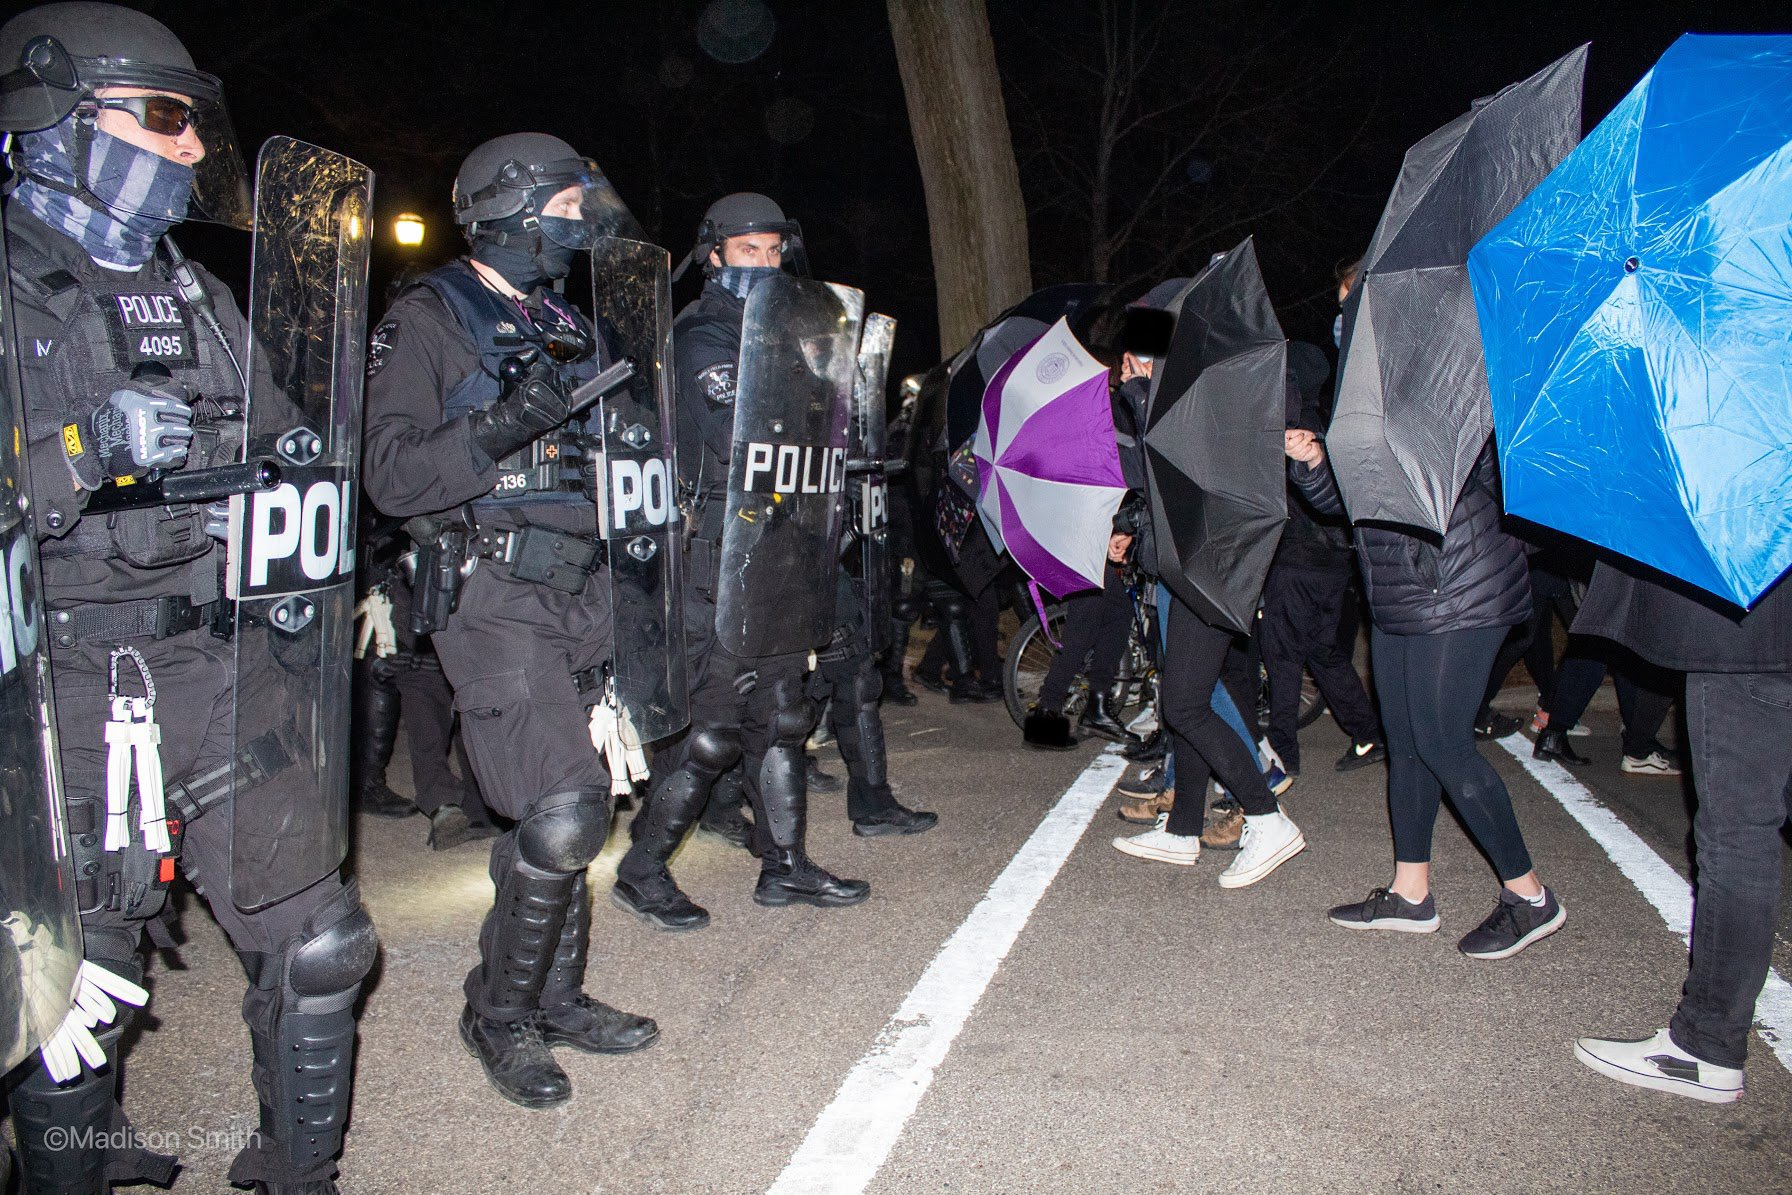 Heavily Armed Police Face Off With 150 Students in Chicago Suburb Demanding University Police Abolition